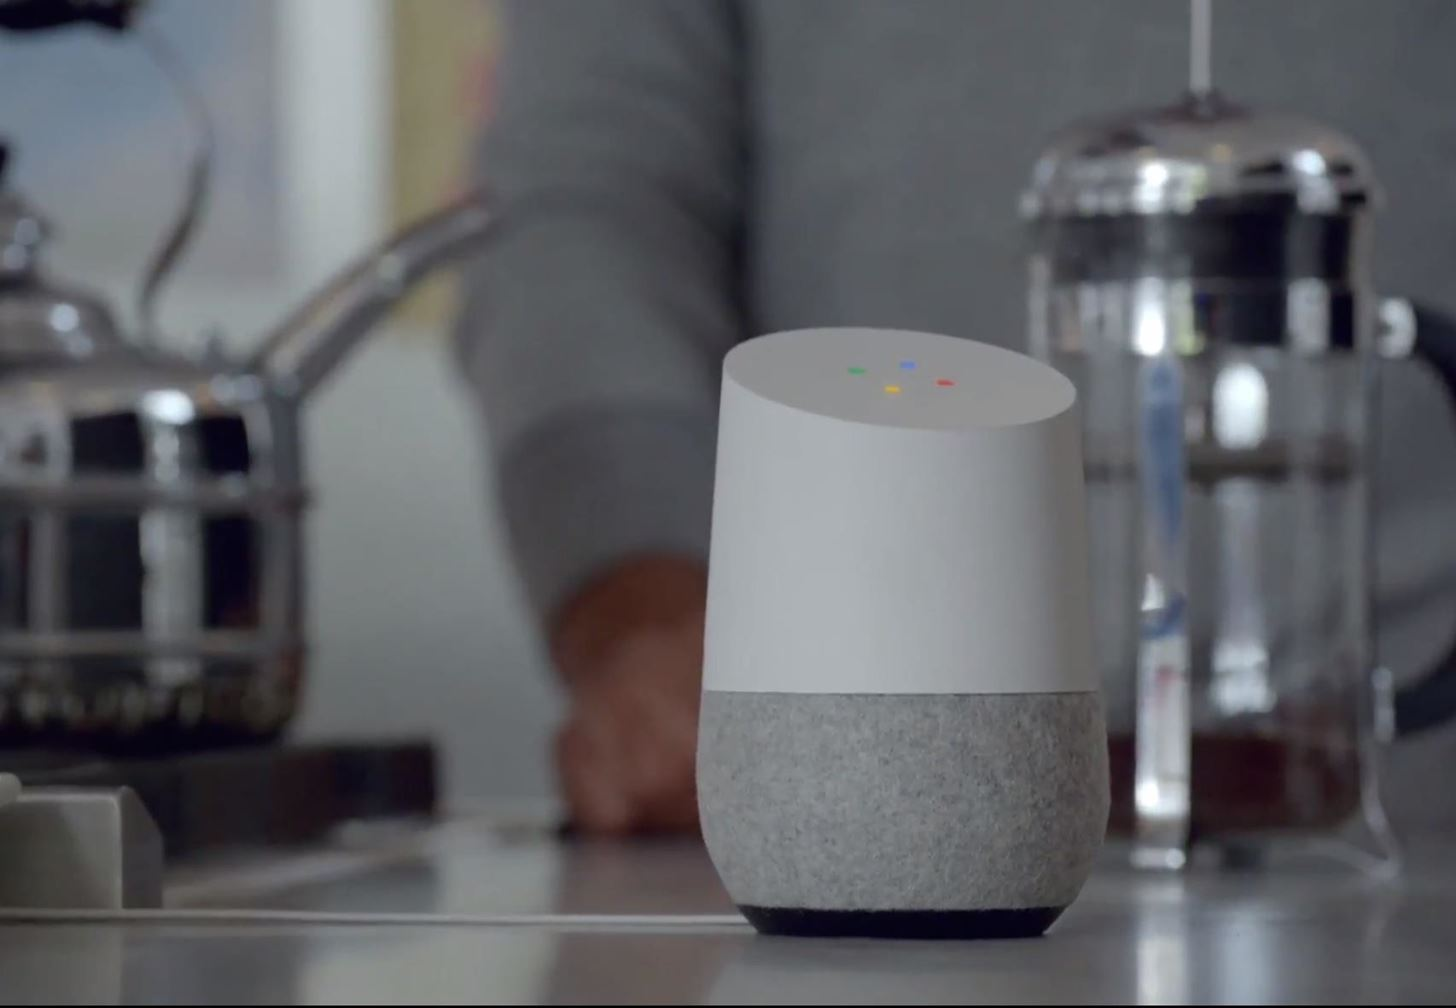 googles-new-home-assistant